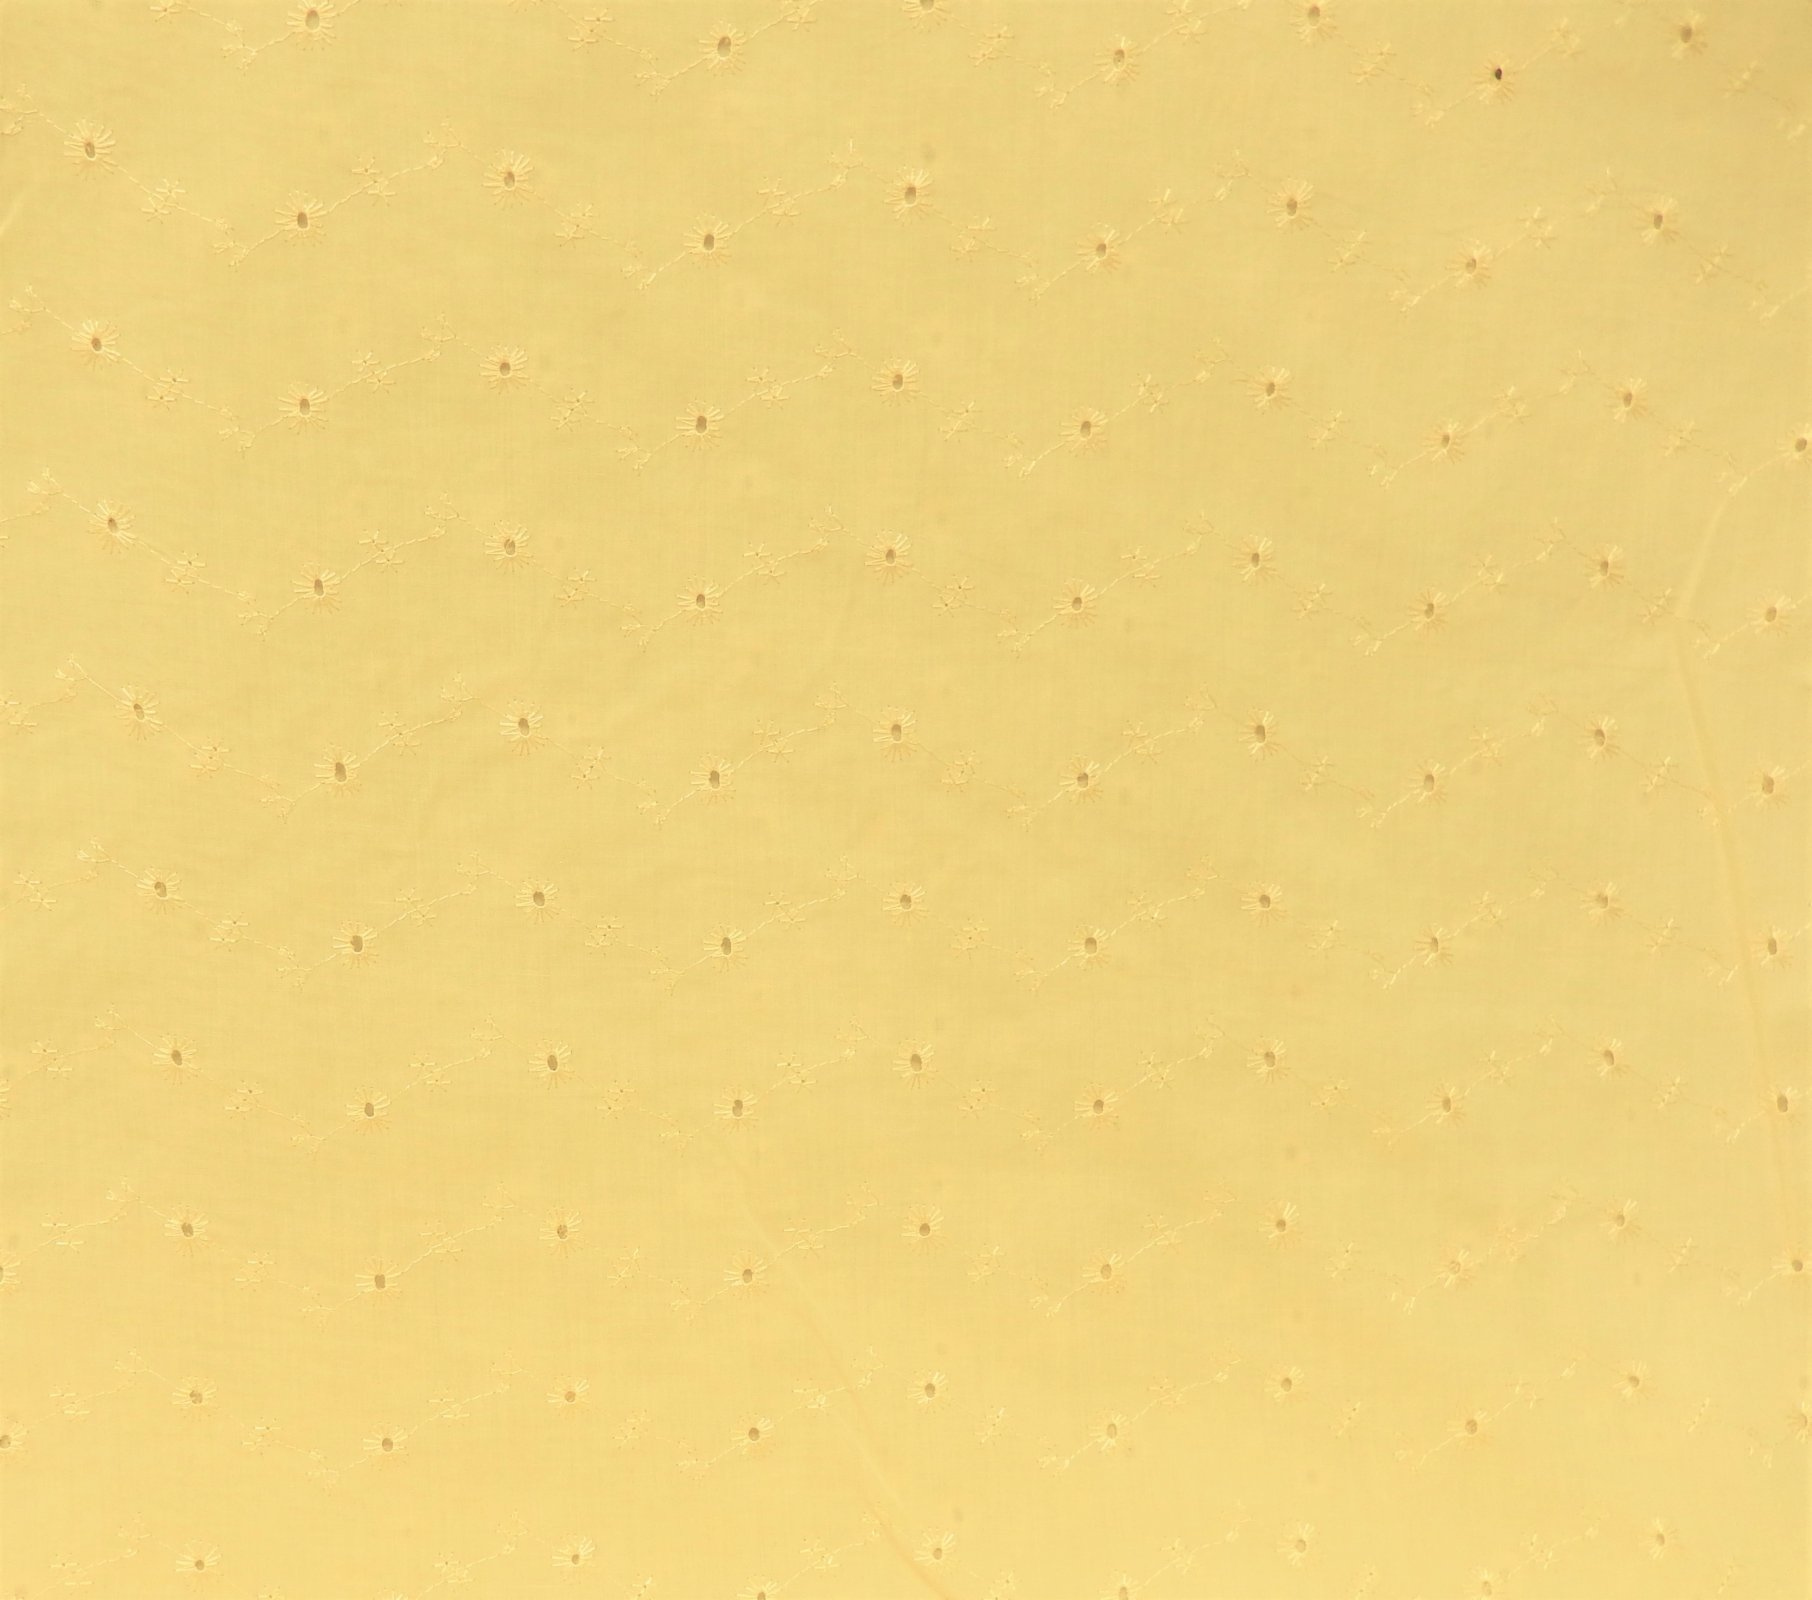 PROMO* FT-Embroidered Eyelet - Maize (Light Yellow)